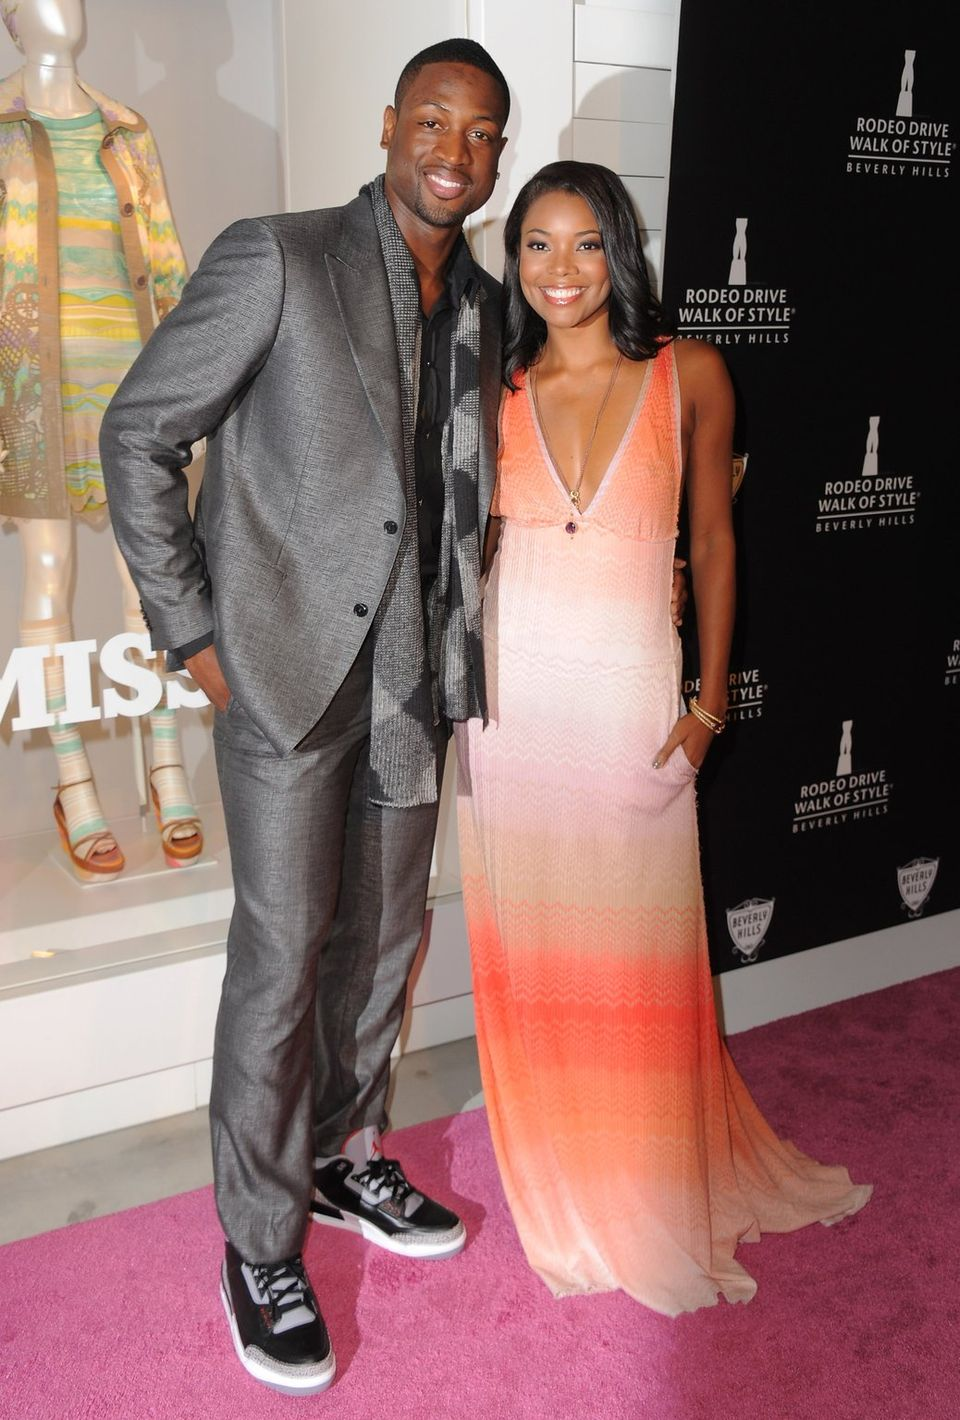 d wade gabrielle union dating Save the date for gabrielle union and dwyane wade's wedding leaks.